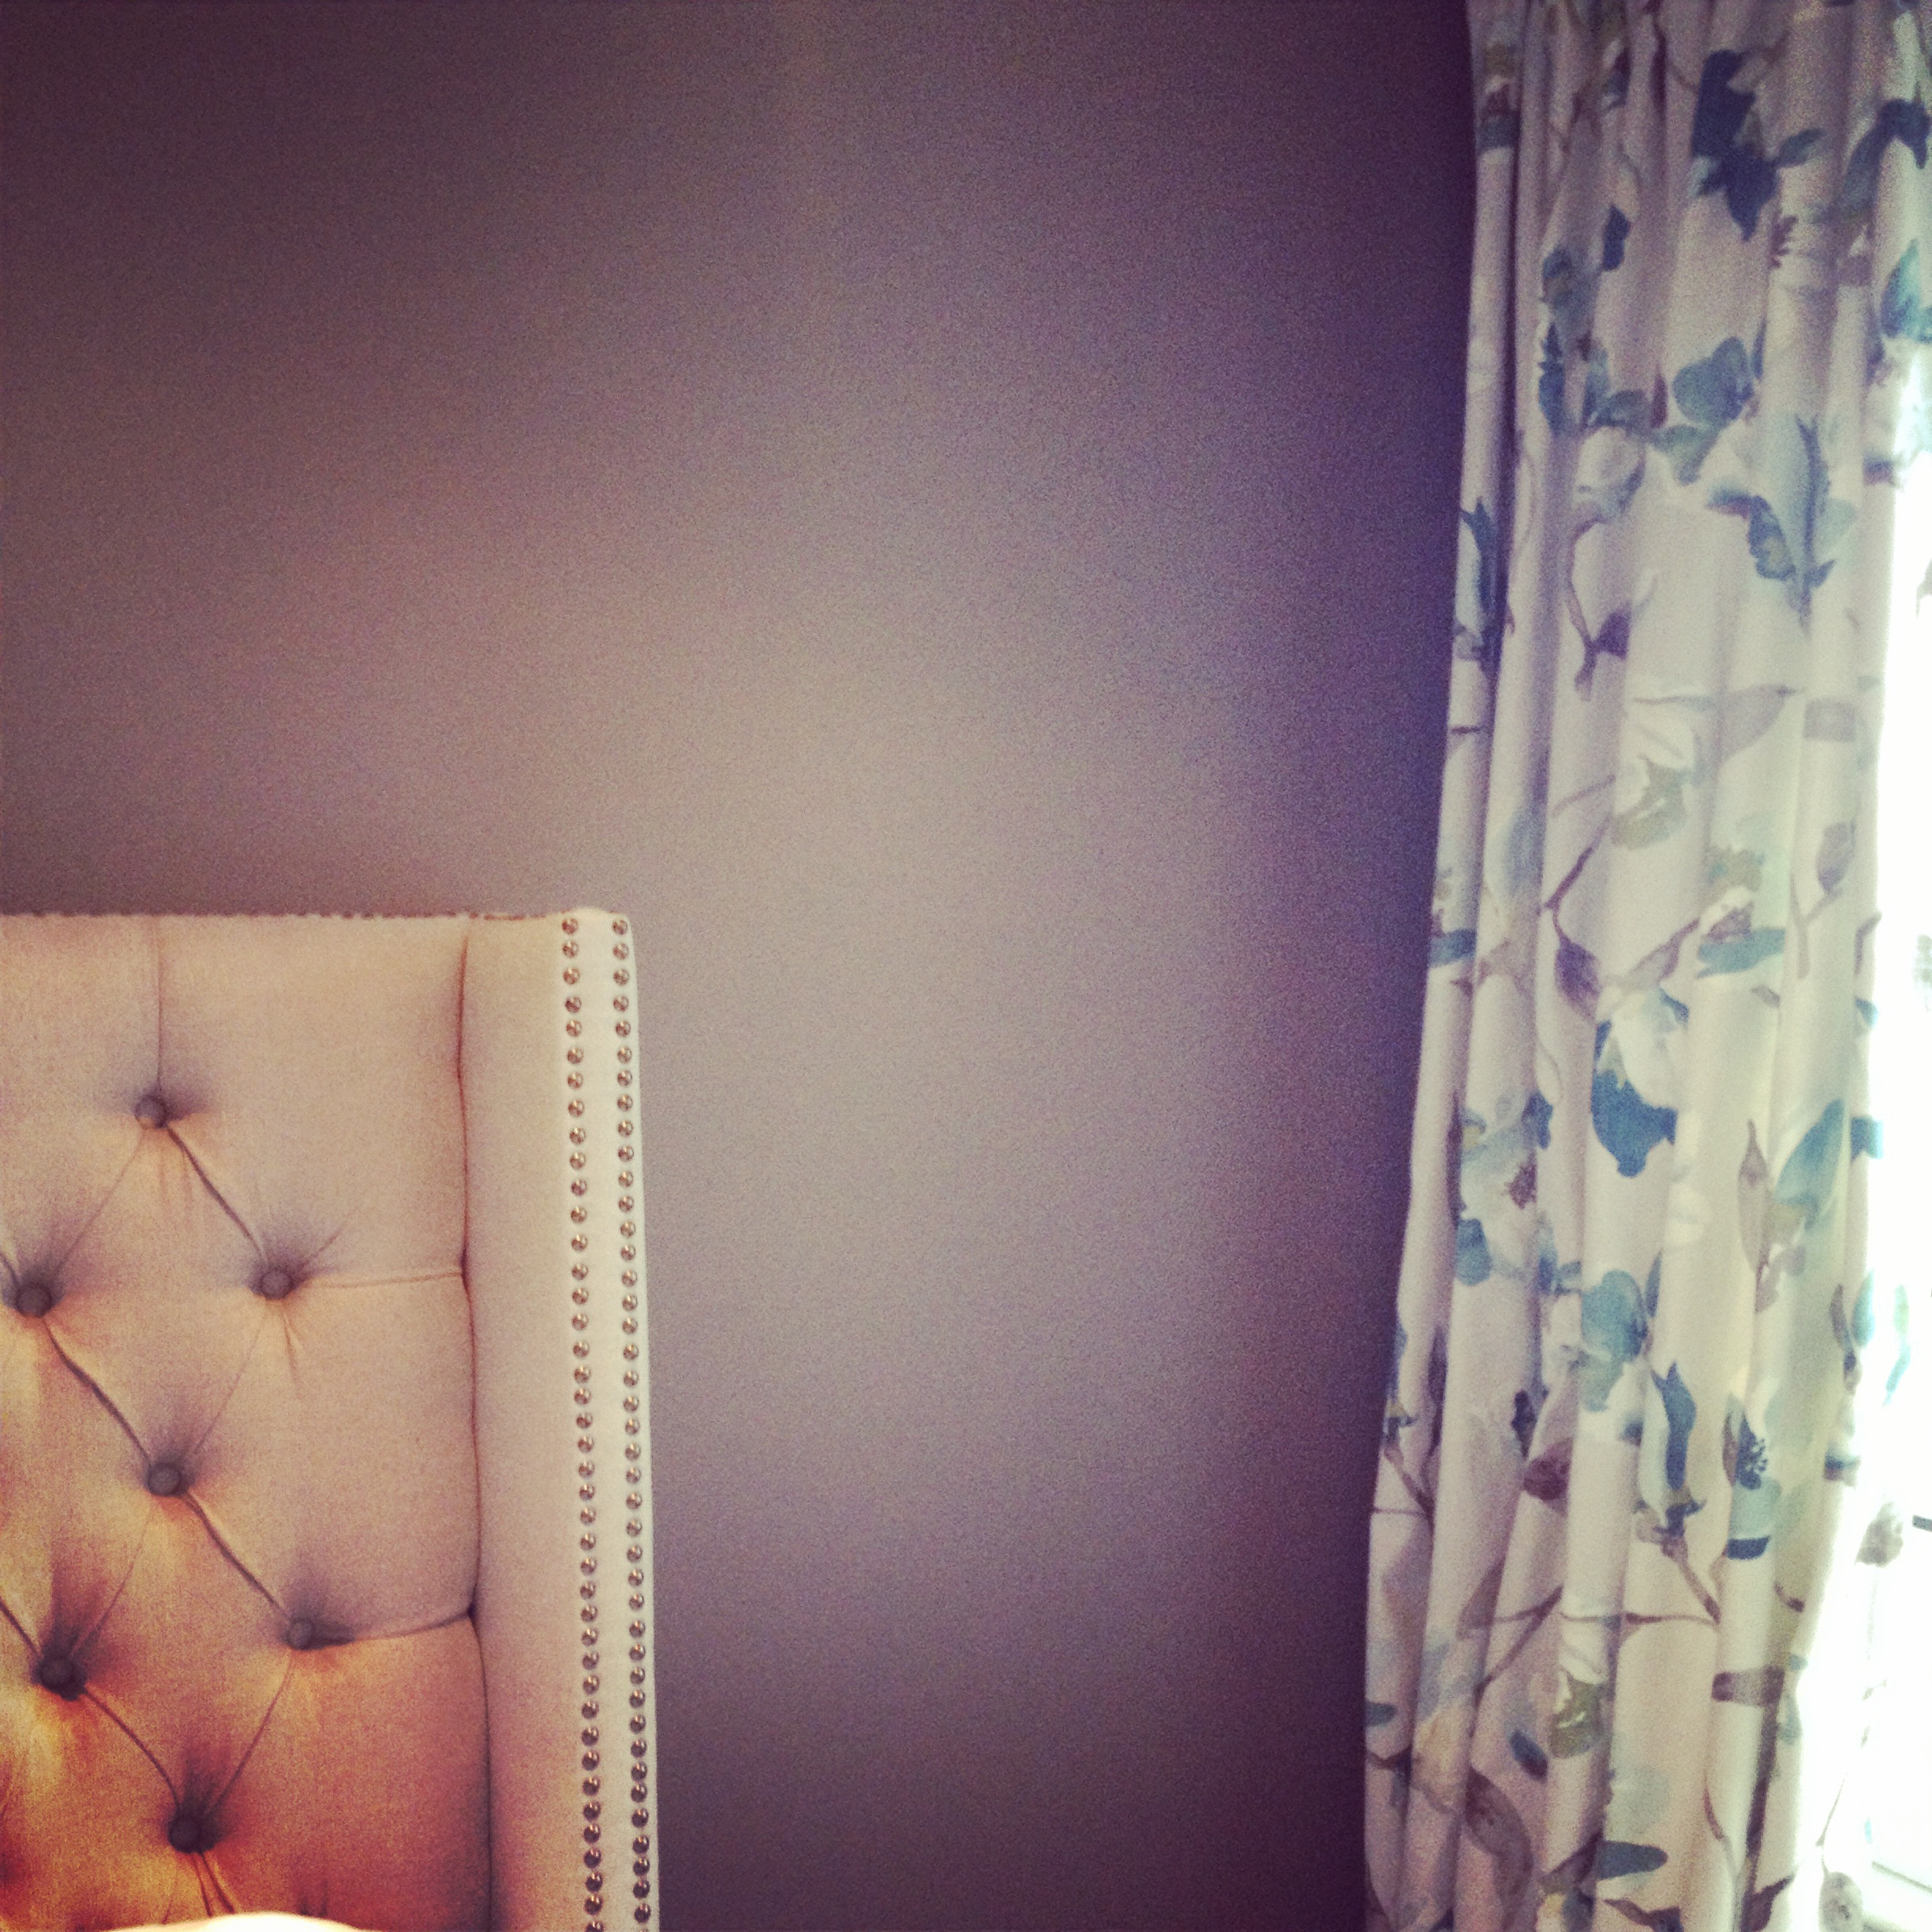 This master bedroom feels so calm and serene thanks to the gorgeous Tonic Living drapes!